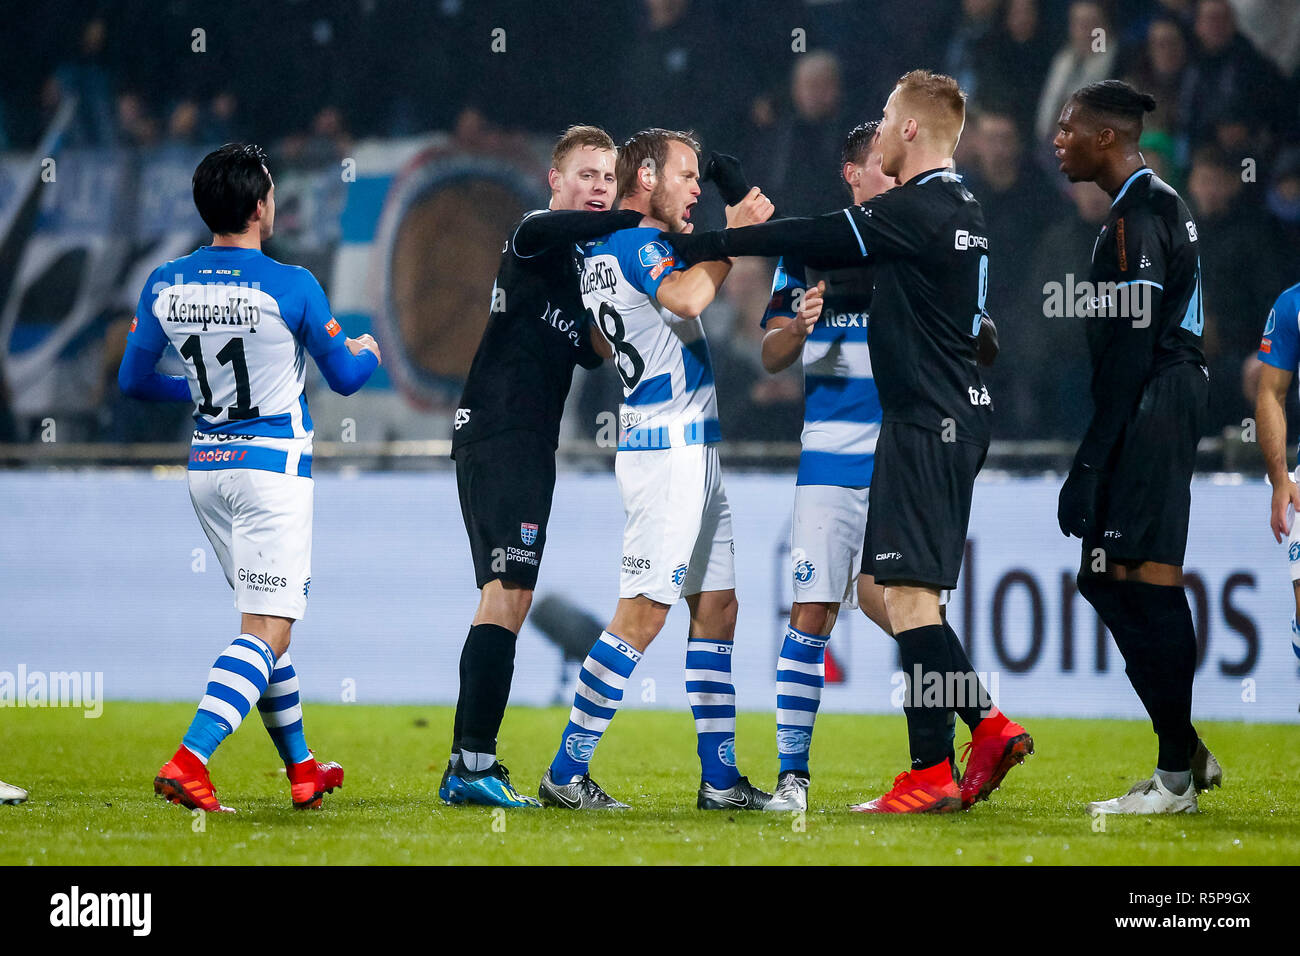 DOETINCHEM, De Graafschap - PEC Zwolle 0-2, football, Eredivisie, season 2018-2019, 01-12-2018, Stadium De Vijverberg, commotion on the field, De Graafschap player Frank Olijve (M) fighting with PEC Zwolle player Mike van Duinen (2R) - Stock Image